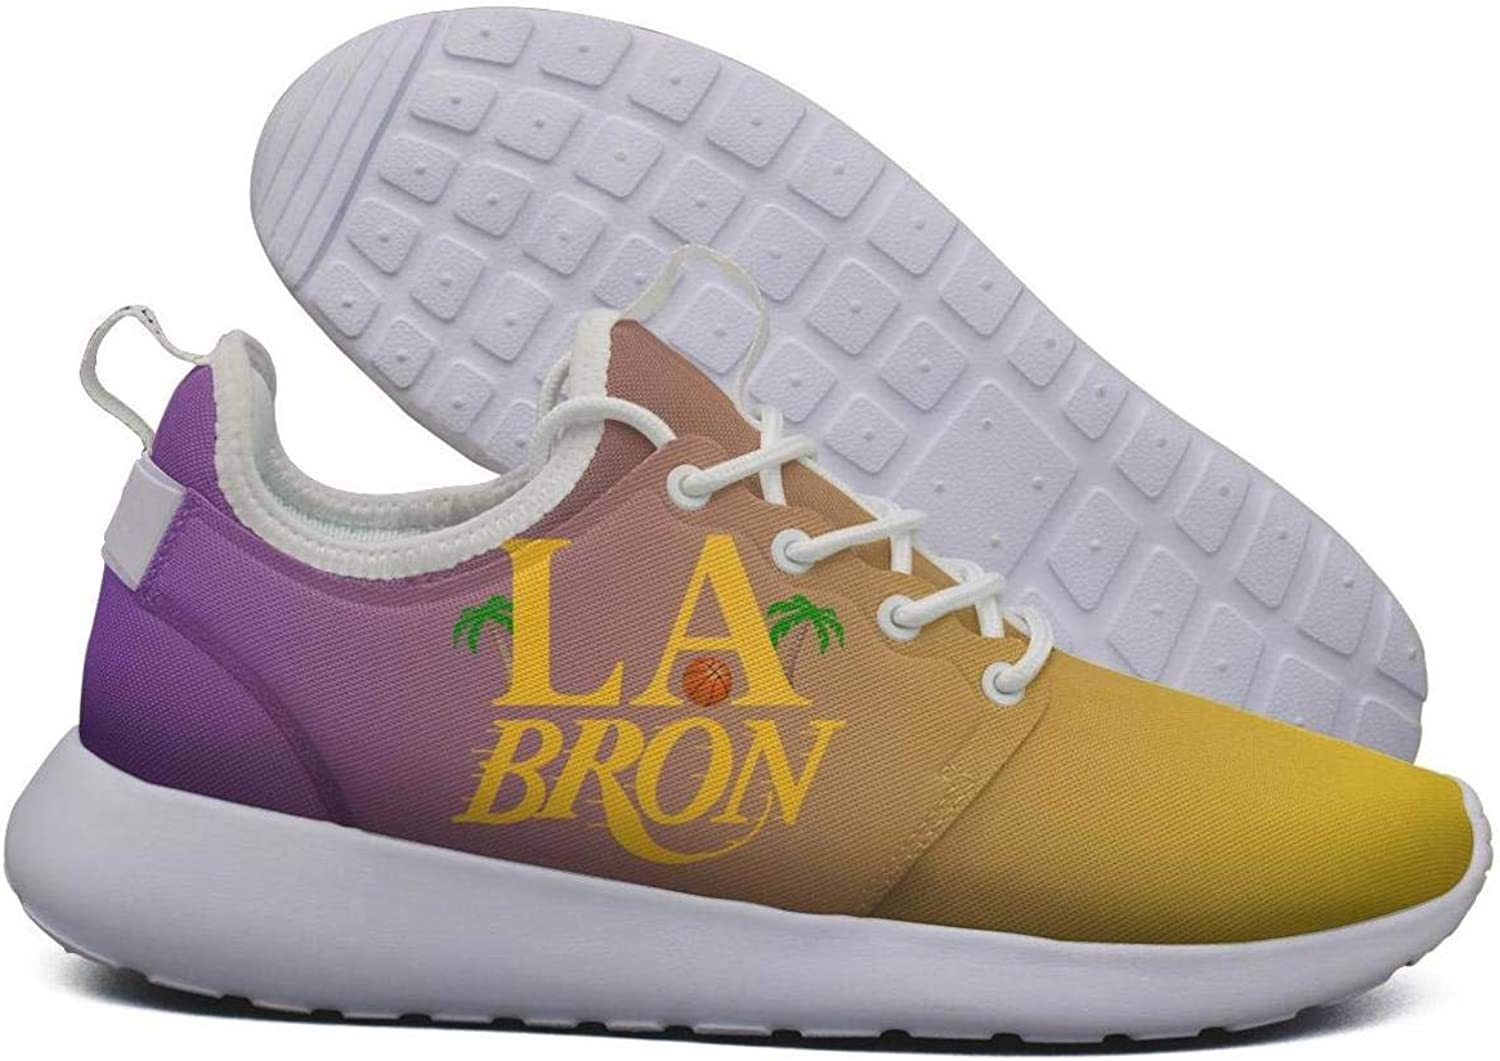 Womens Roshe Two Lightweight Beach_LABRON_Coconut_Tree_Basketball Beautiful Road Running mesh shoes